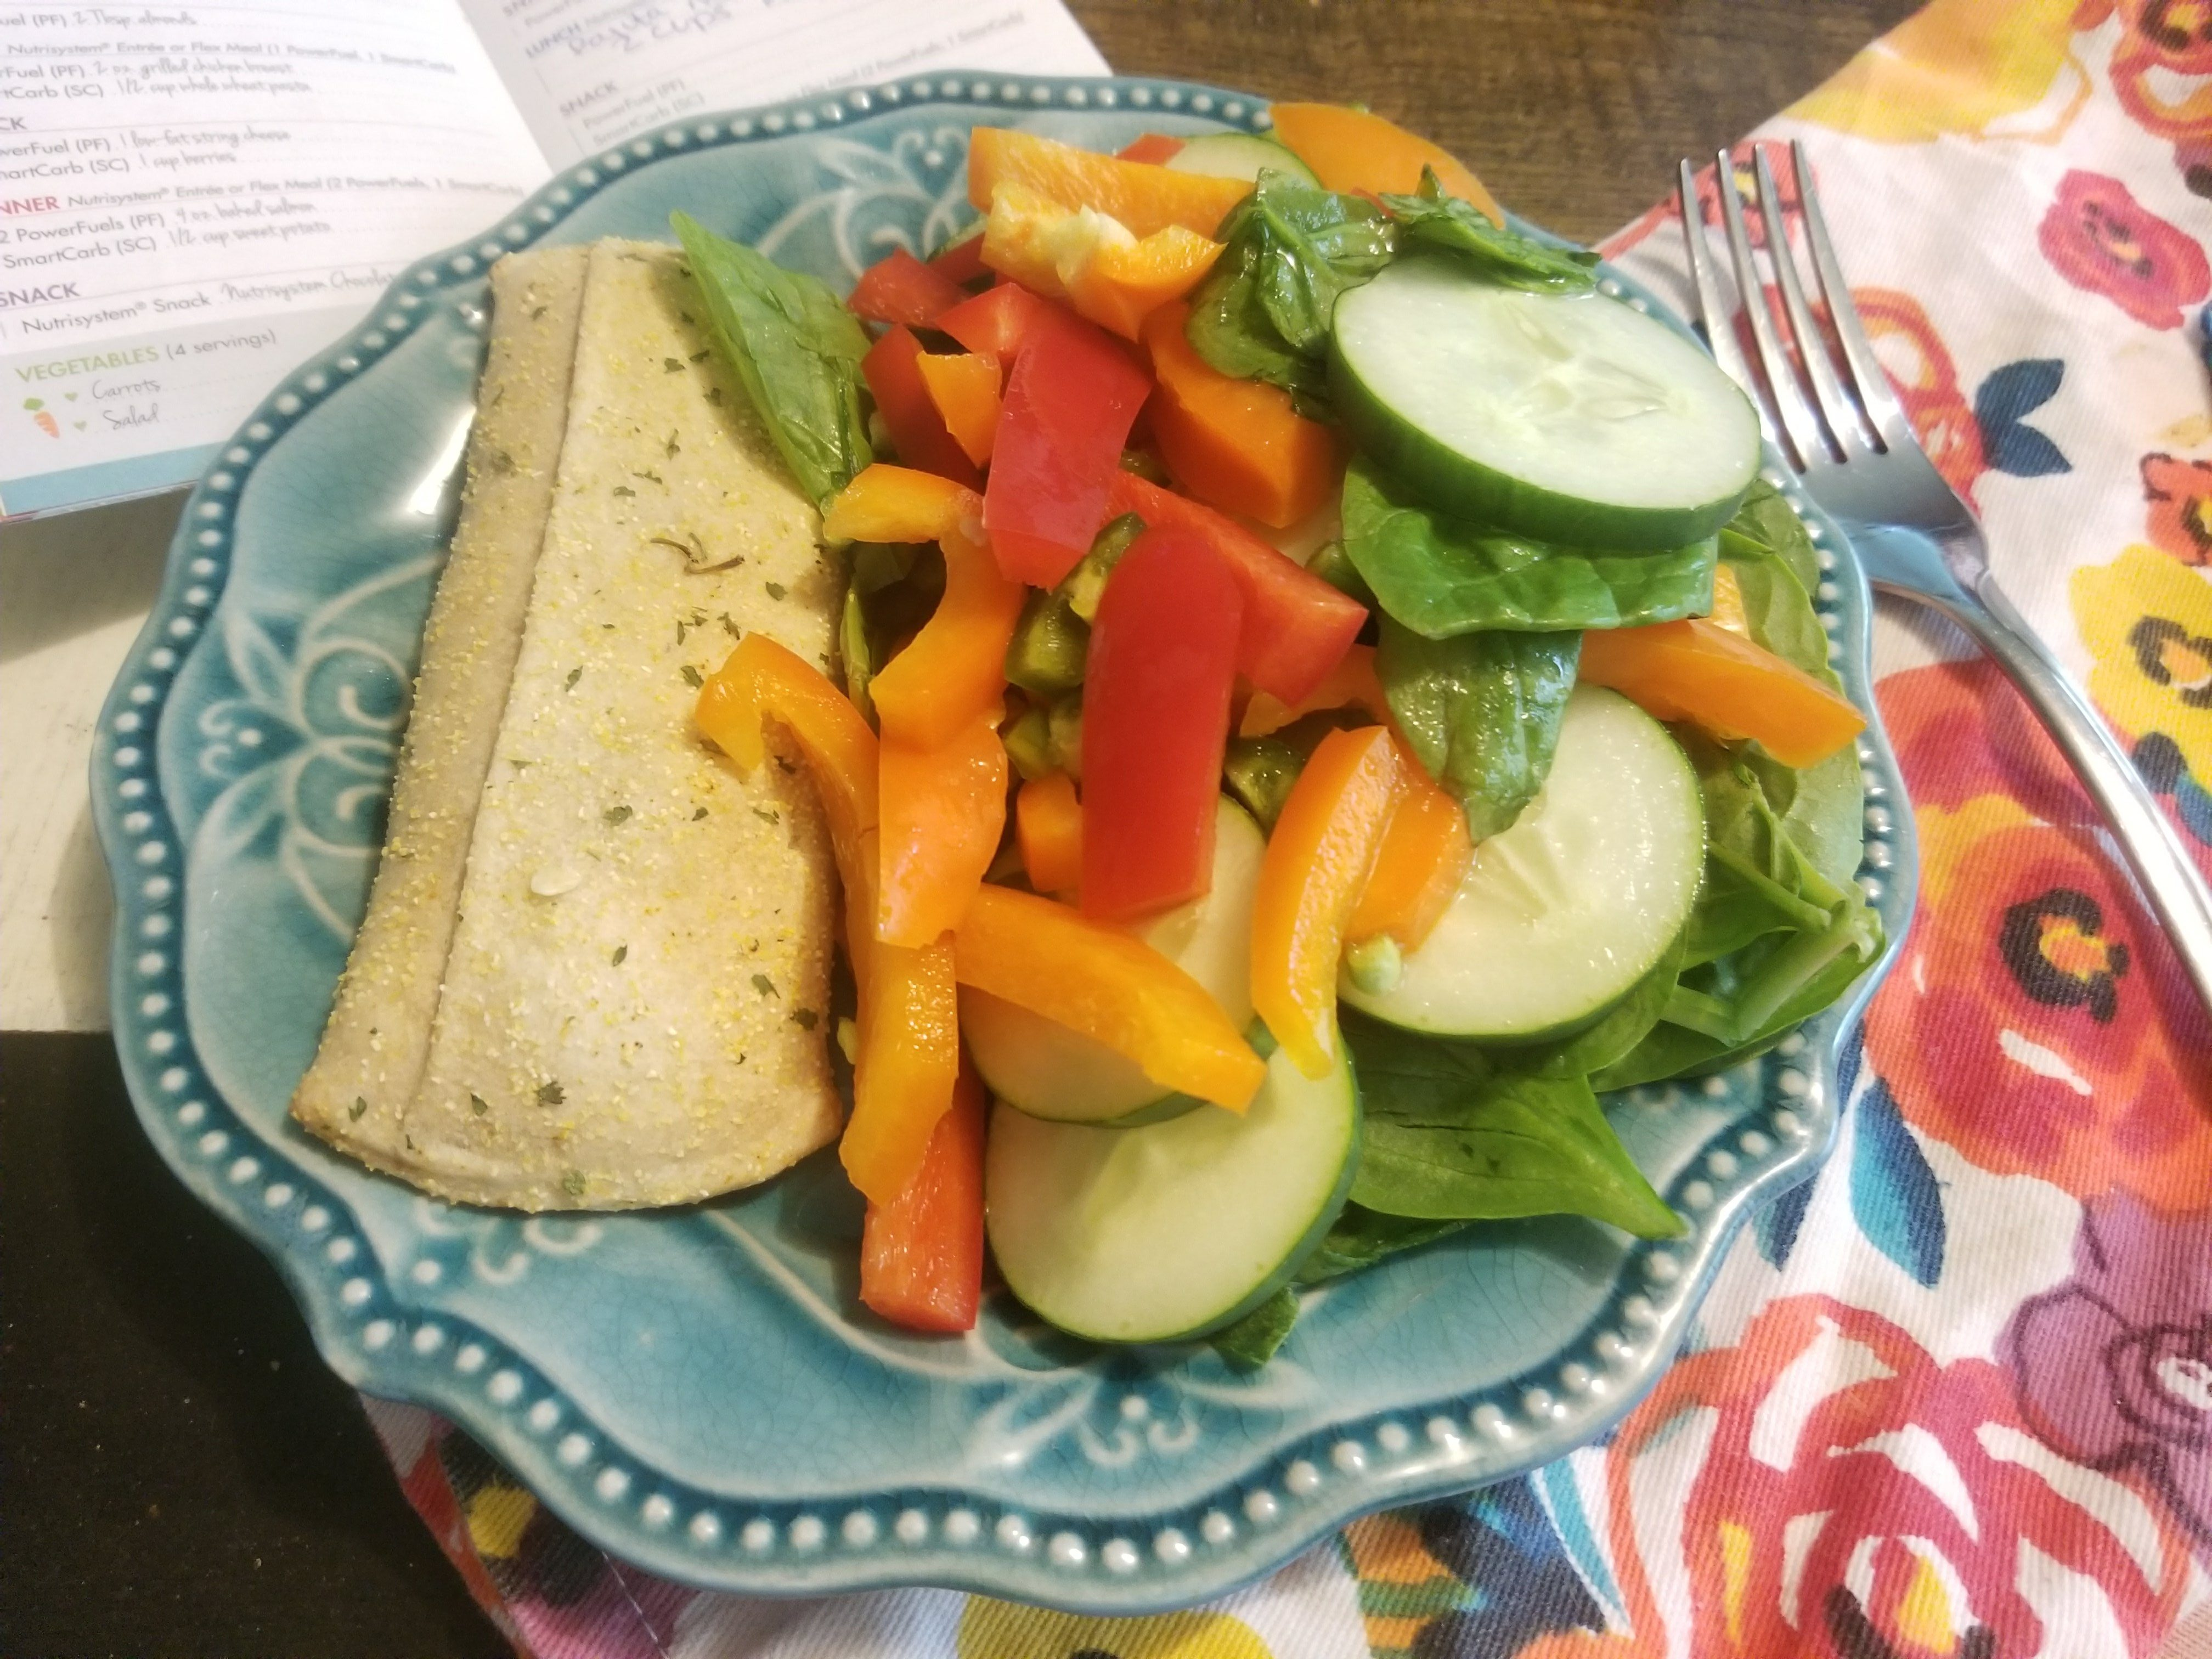 Nutrisystem Review: Week 2 Updates and What I Ate